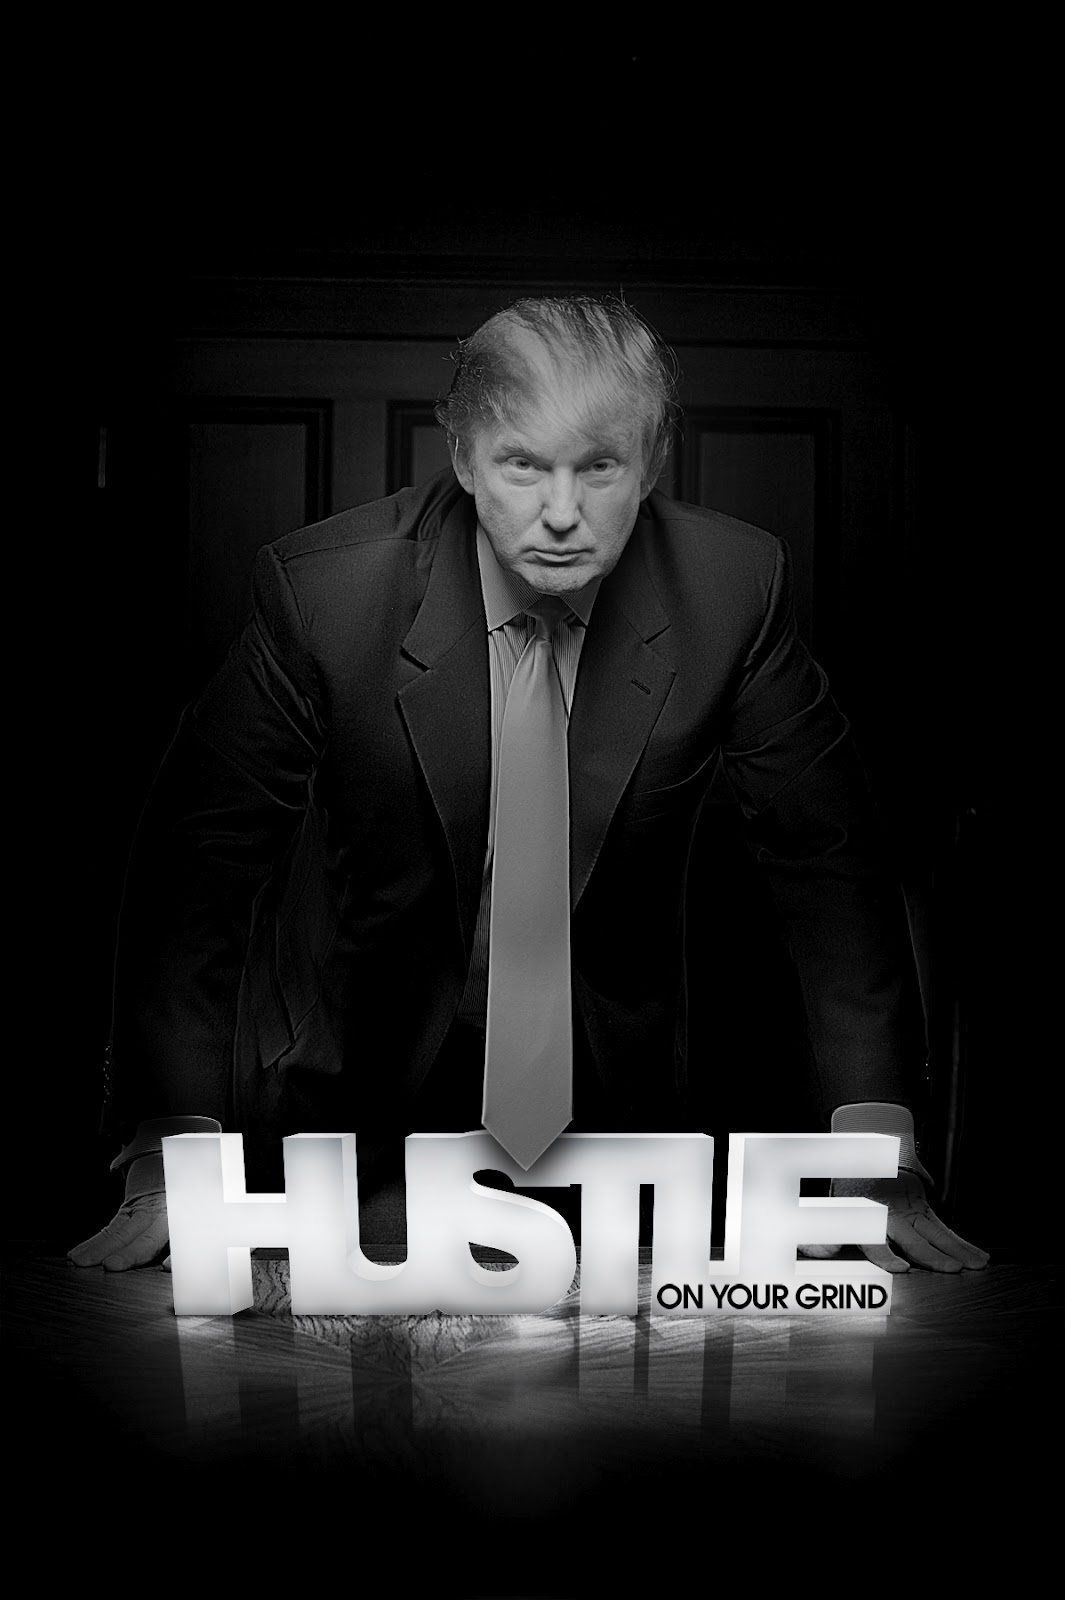 Hustle Gang Wallpaper Hustle by any means 1065x1600